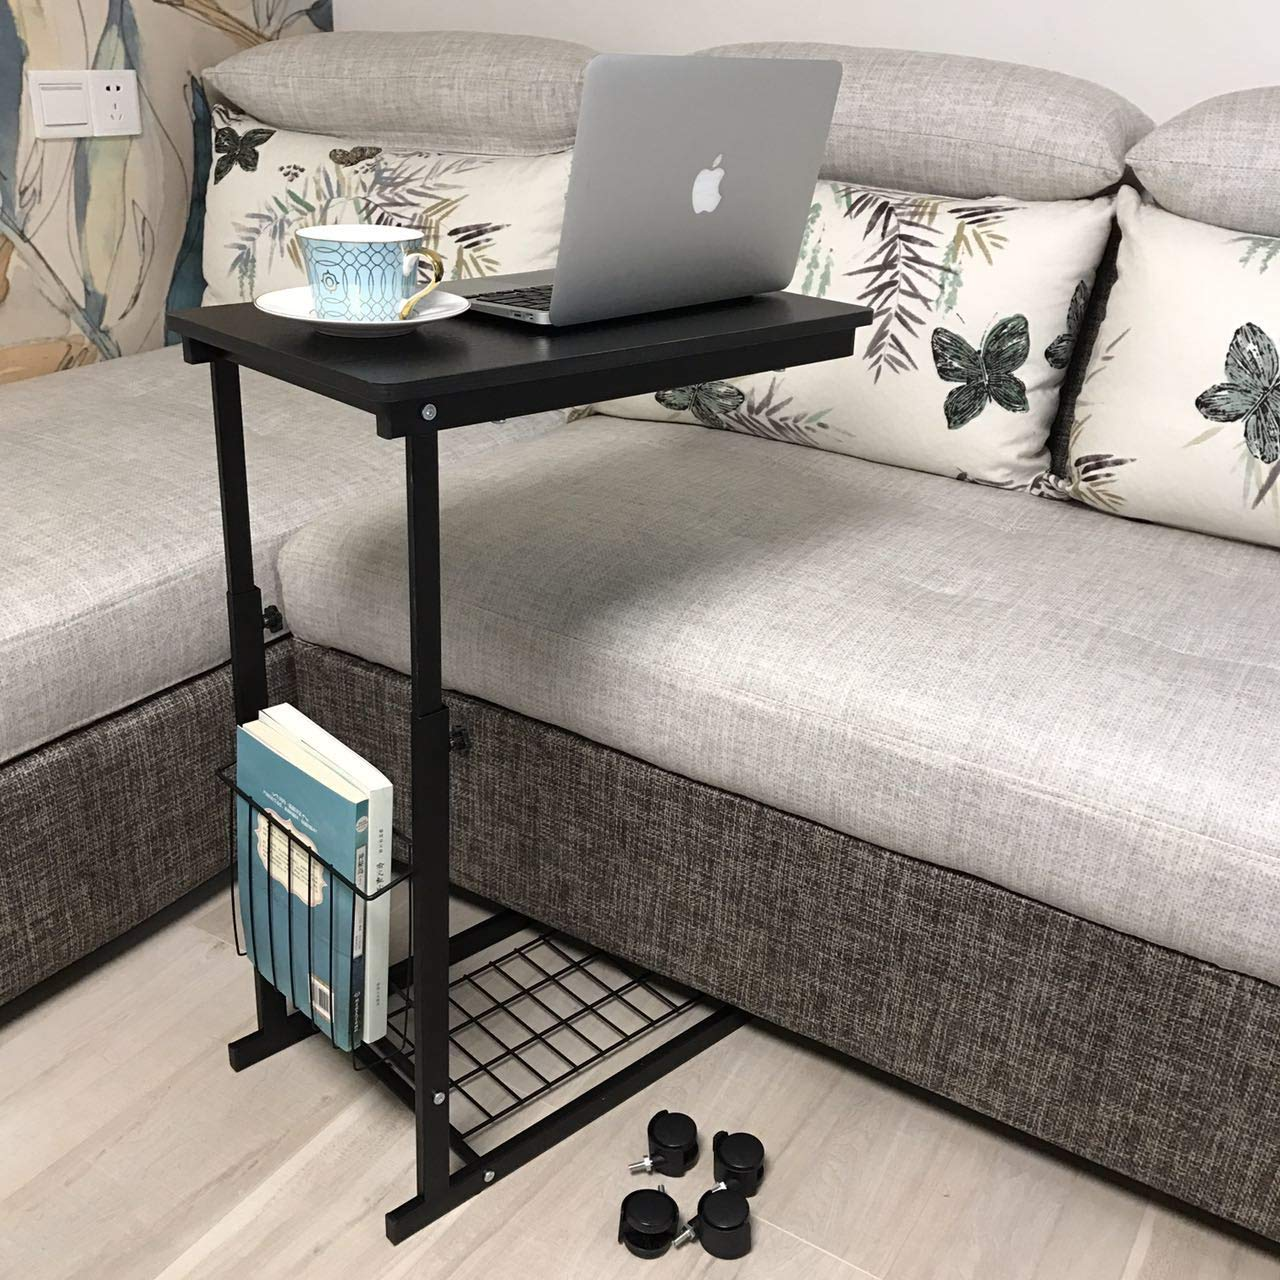 micoe height adjustable with wheels sofa side table extra long accent slide under console storage for entryway hallway kitchen dining metal end tables and coffee round hall